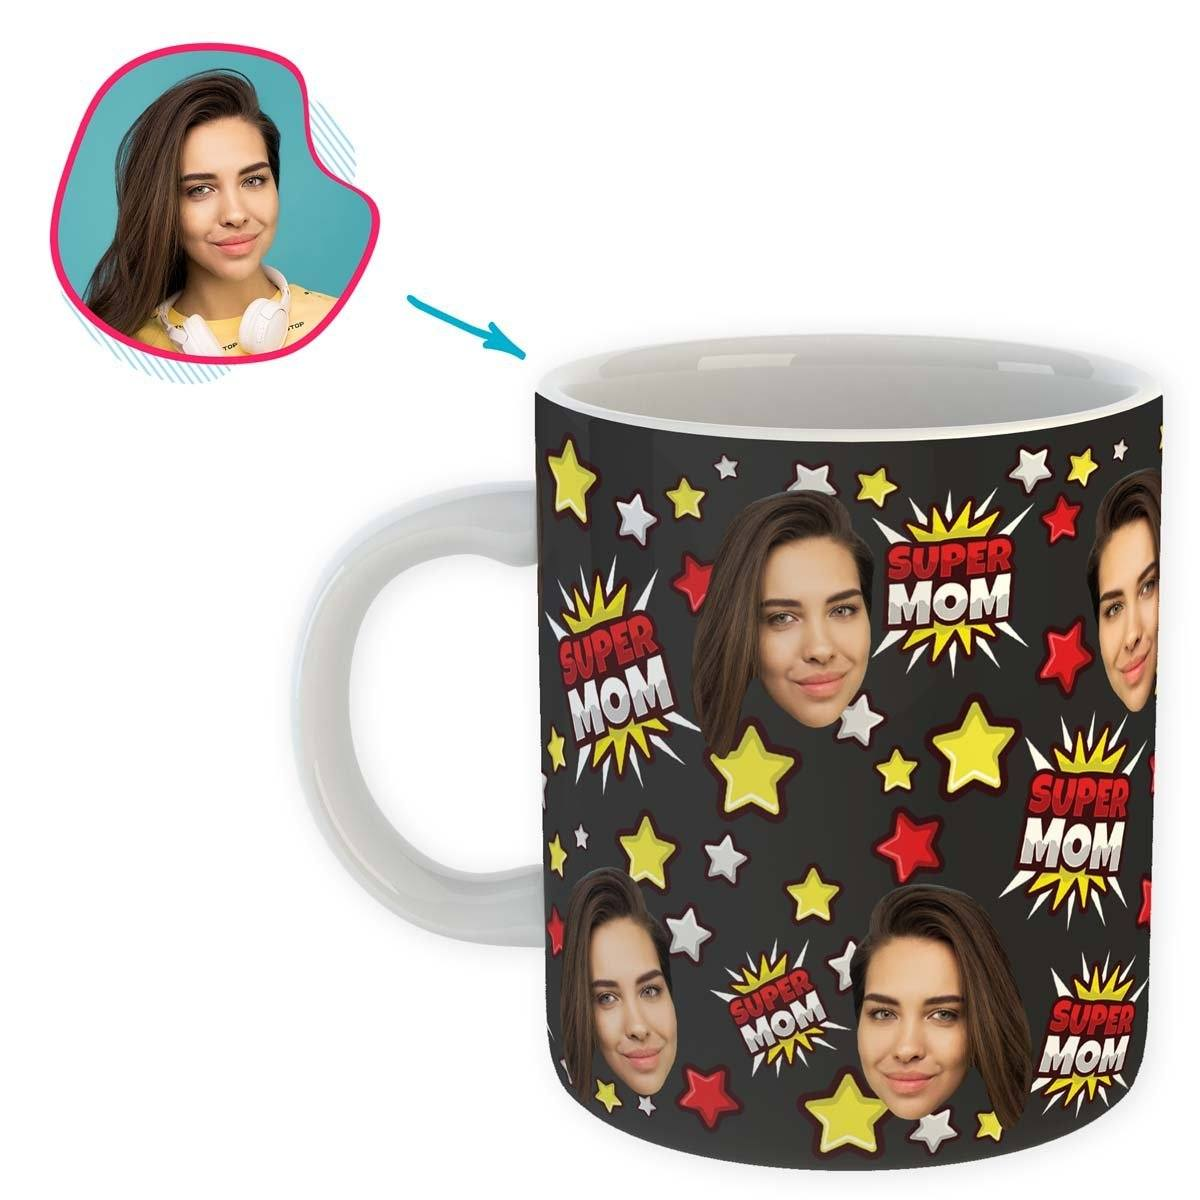 dark Super Mom mug personalized with photo of face printed on it